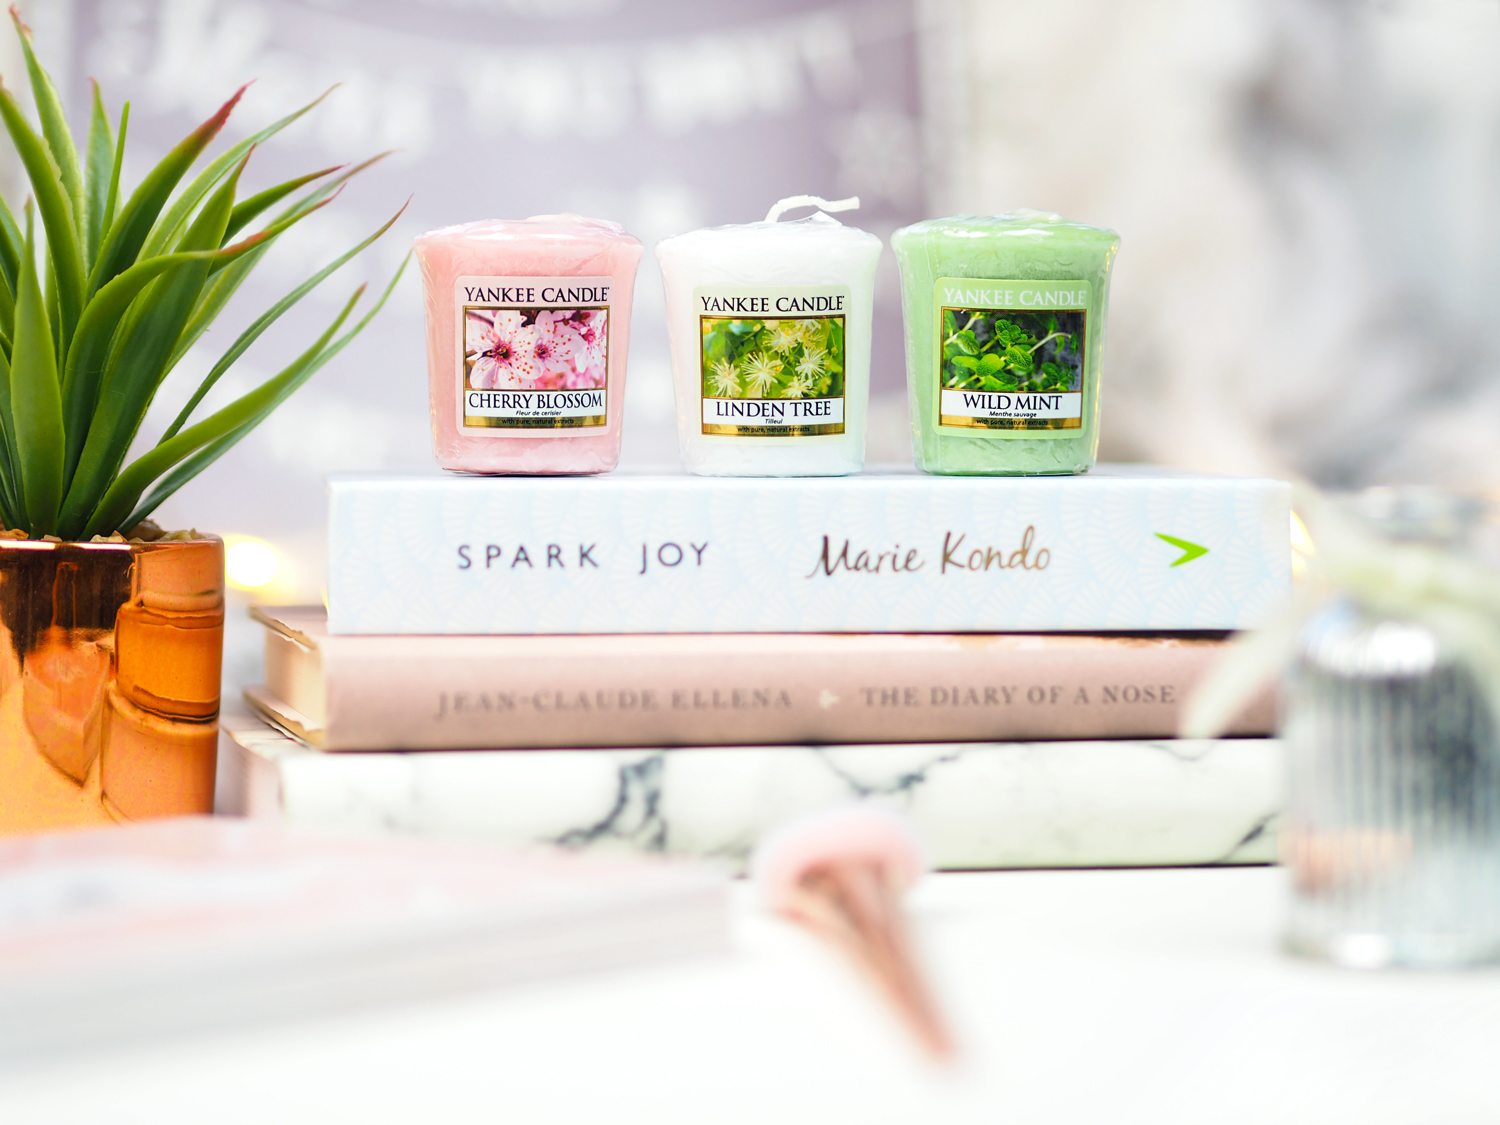 Yankee Candle Pure Essence Collection 2017